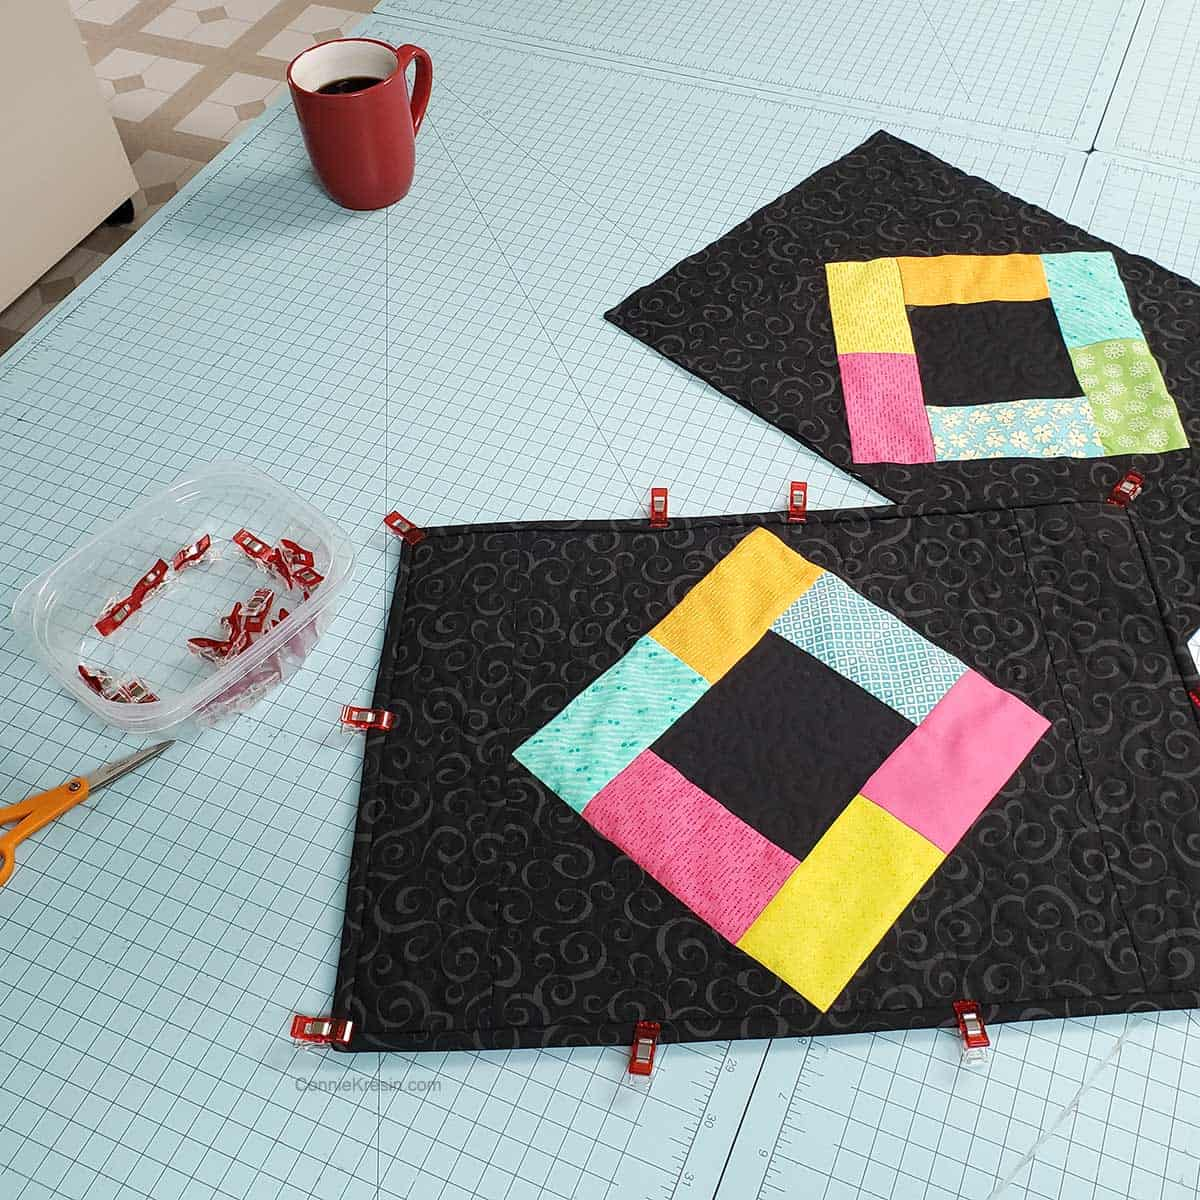 Binding the placemats